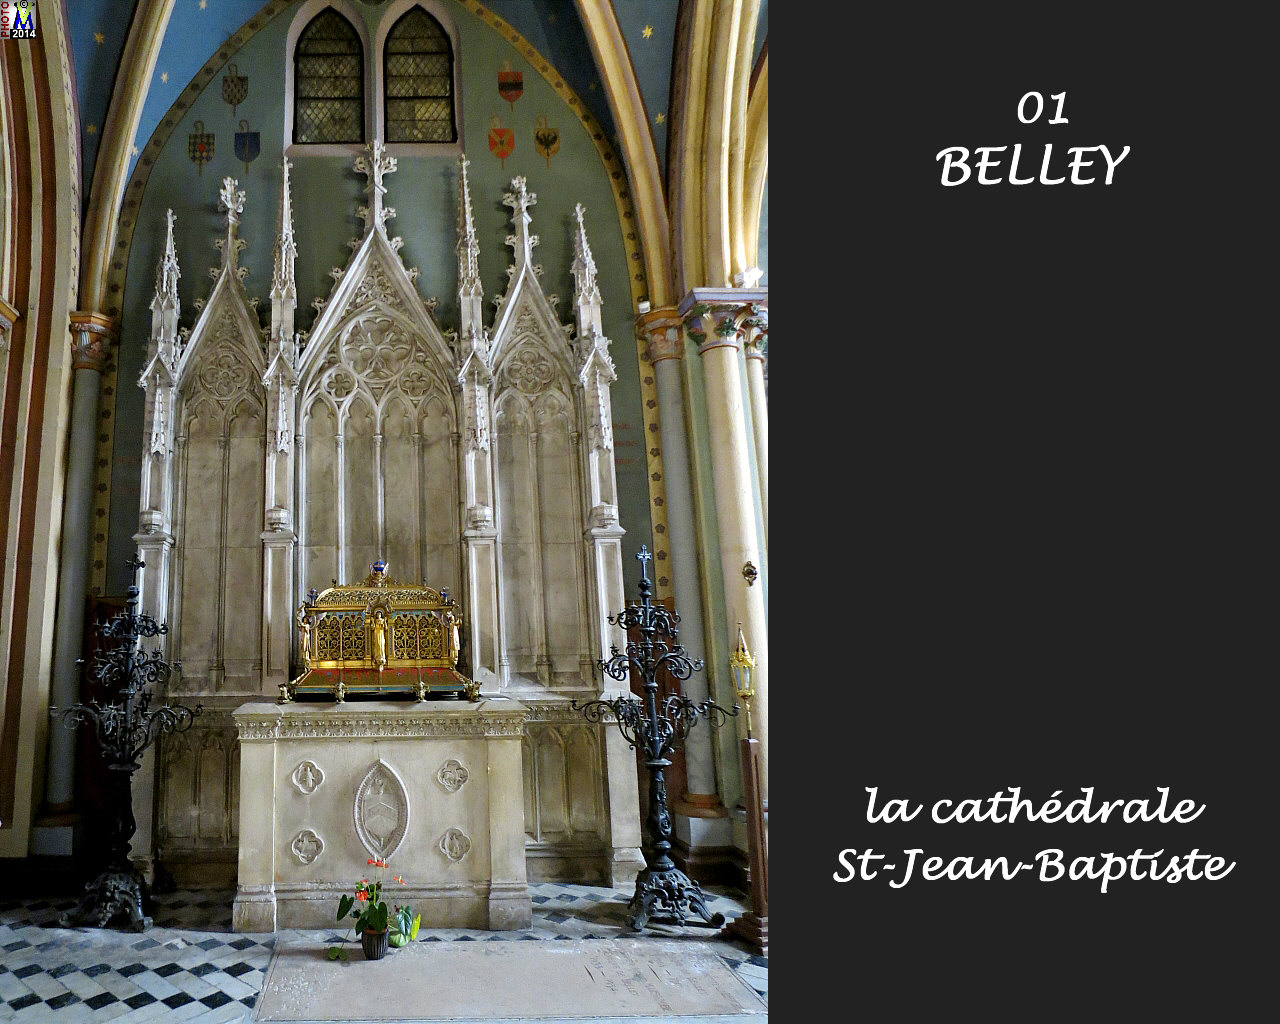 01BELLEY_cathedrale_236.jpg